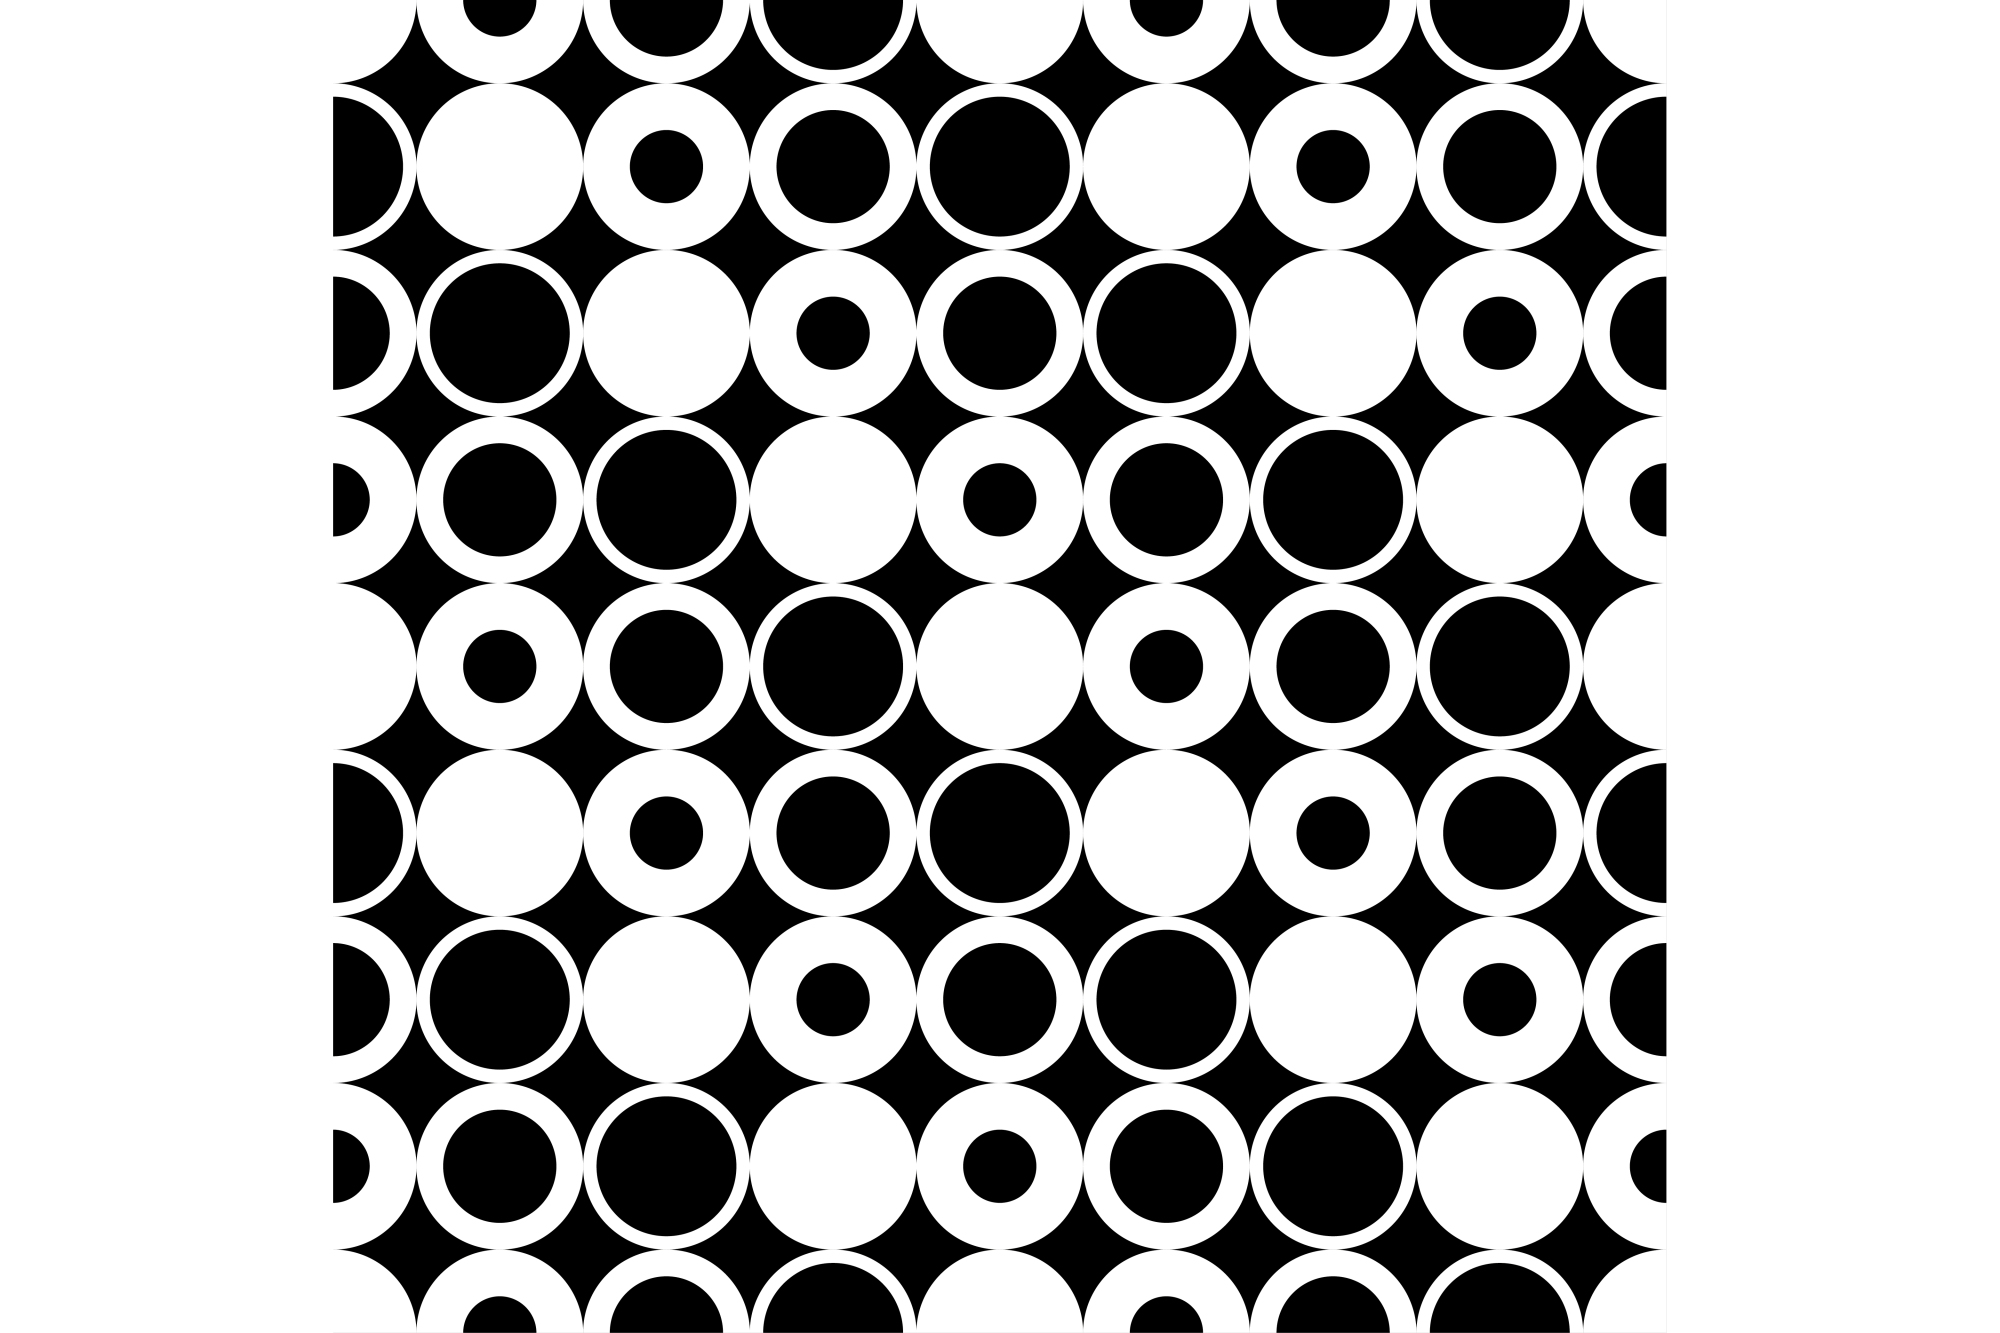 Seamless vector decorative background with circles, rings and polka dots. Print. Cloth design, wallpaper. example image 1